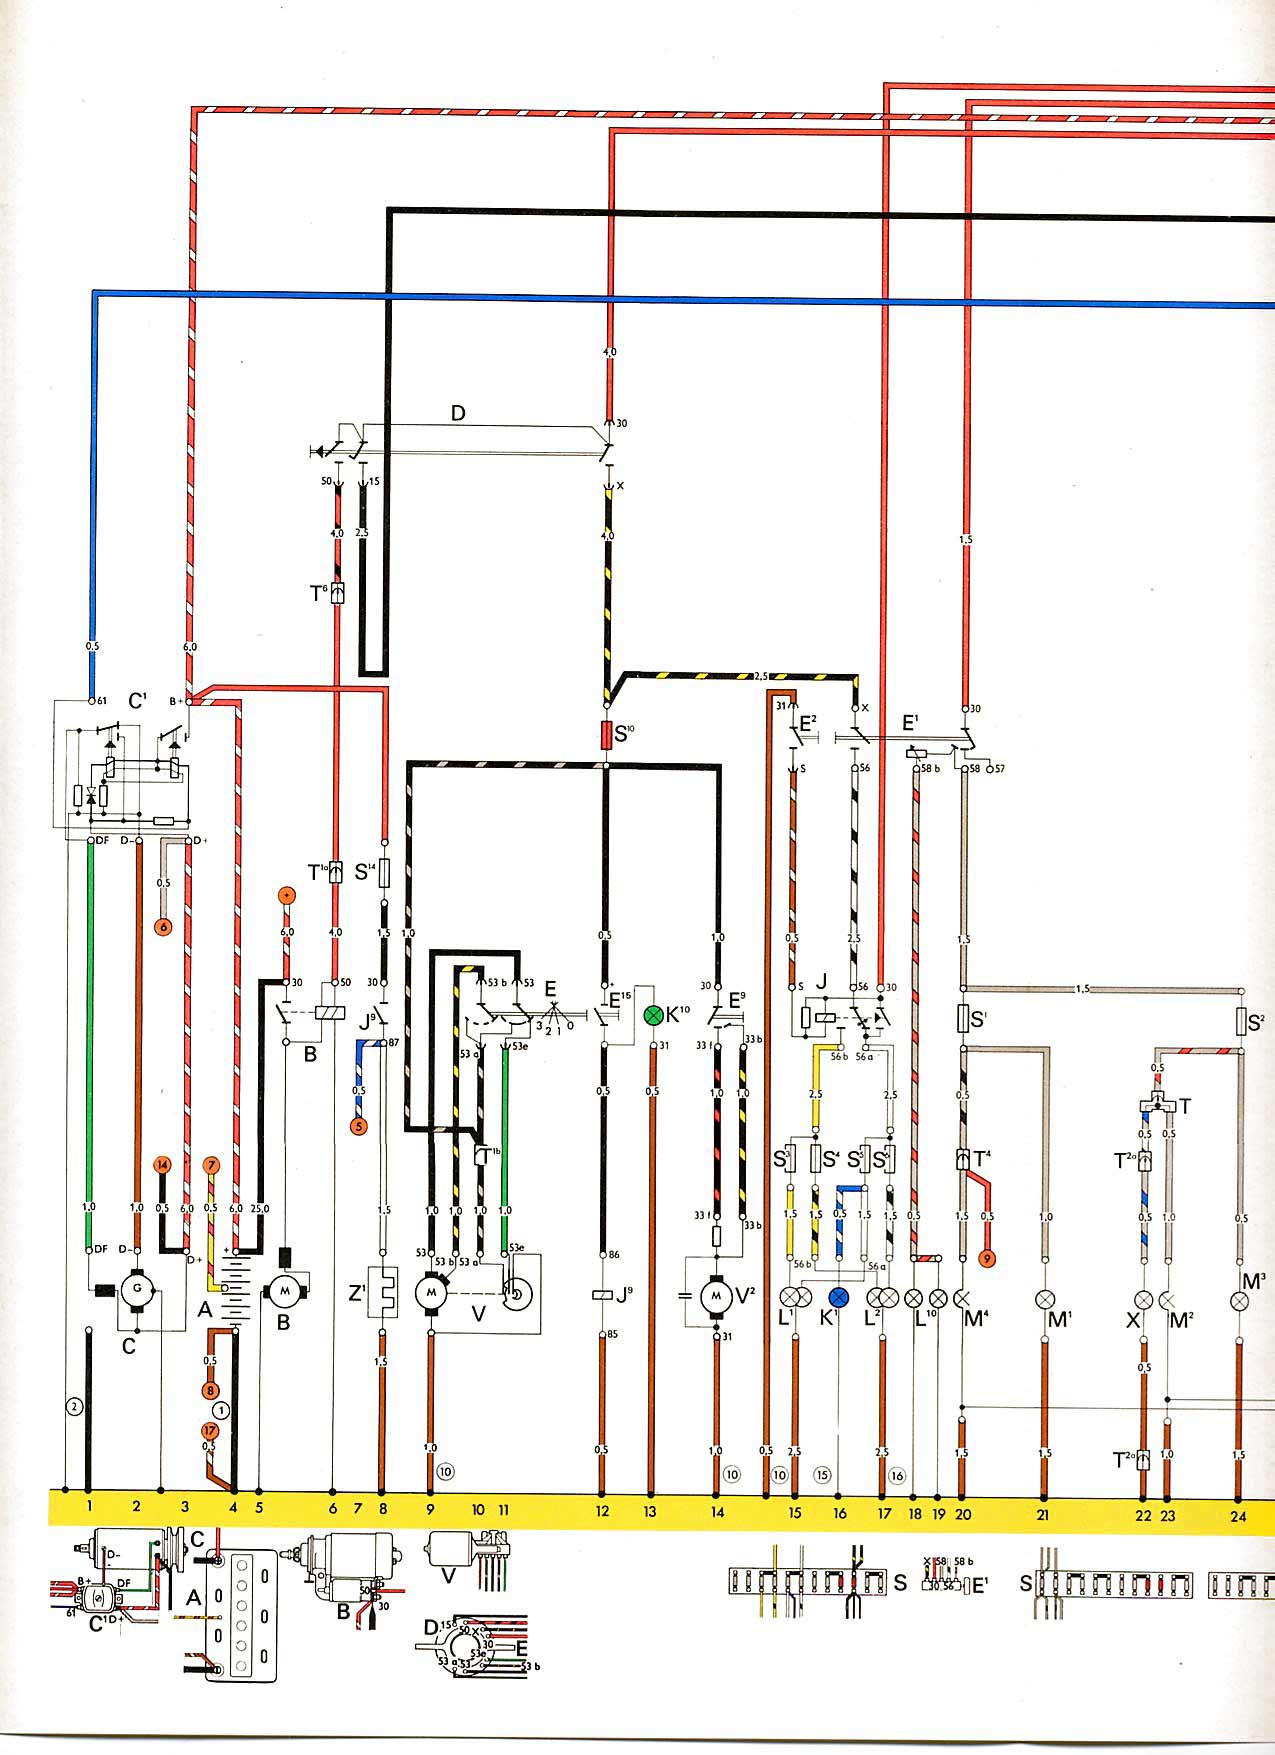 2002 vw golf stereo wiring diagram crf50 vwtyp1.com • view topic - 1303s-73 tredje året